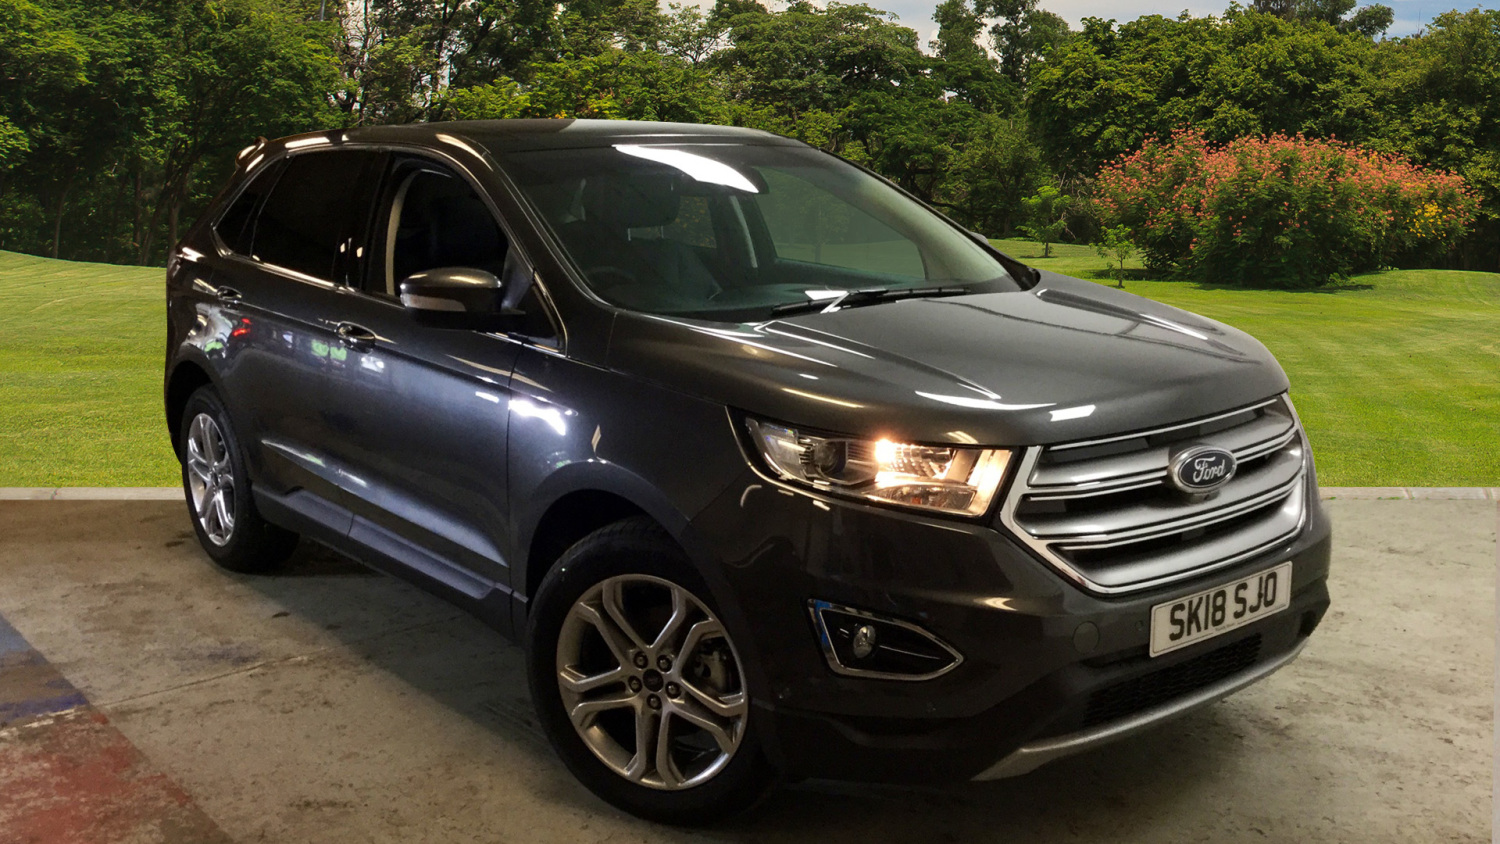 Pin It On Pinterest Source  C B Buy Online Ford Edge   Titanium Dr Sel Estate For